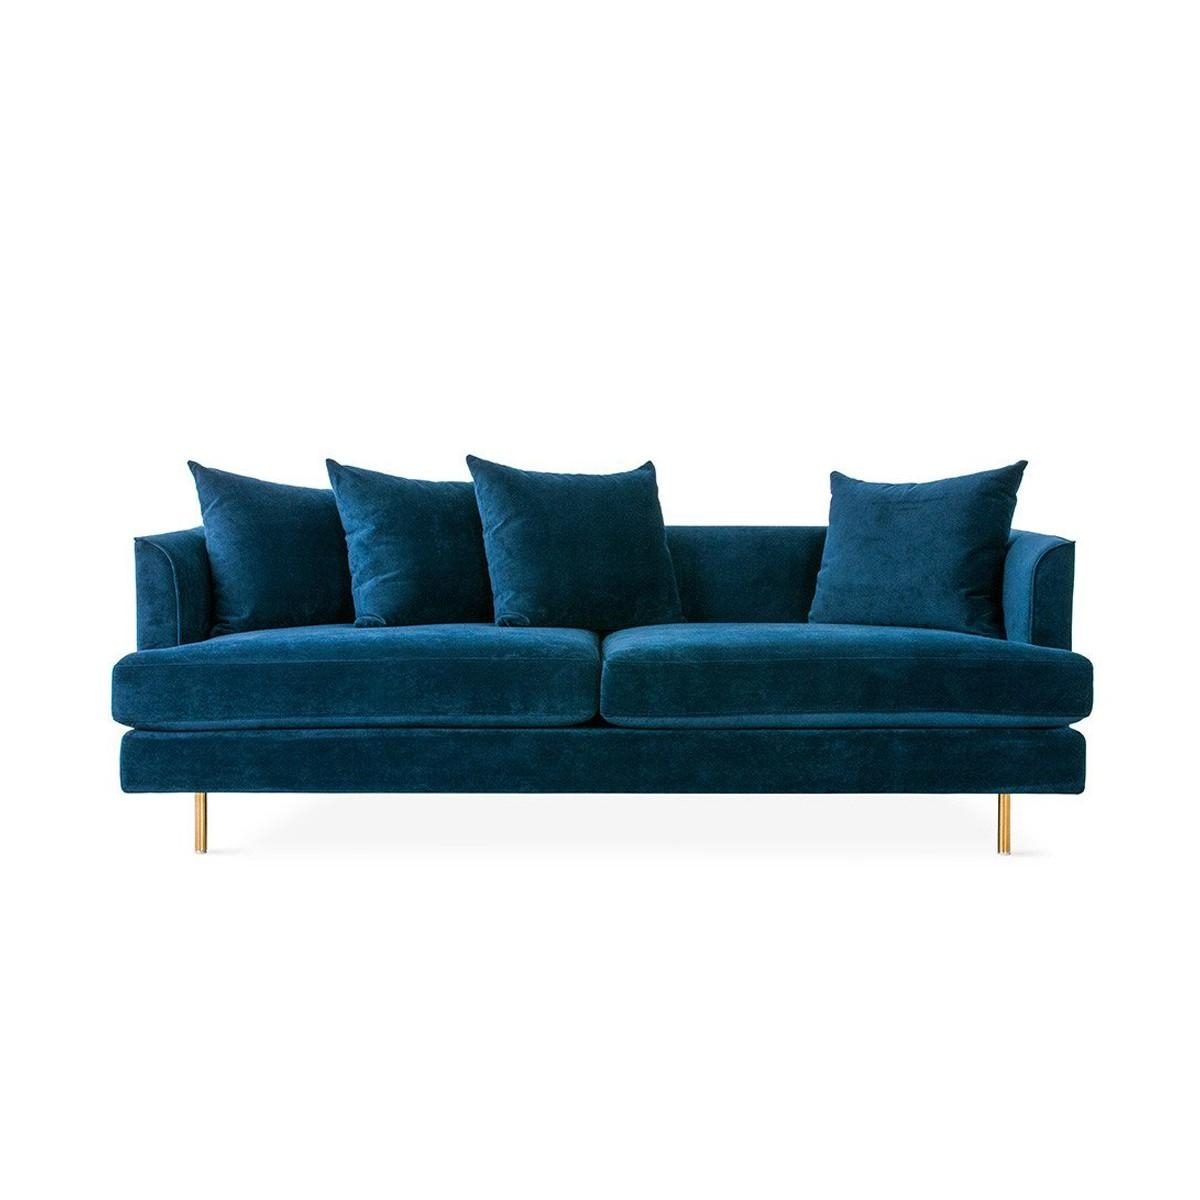 Gus Modern – Margot 3 Seater Sofa – Modern Sofas For Your Living Within Modern 3 Seater Sofas (View 5 of 20)